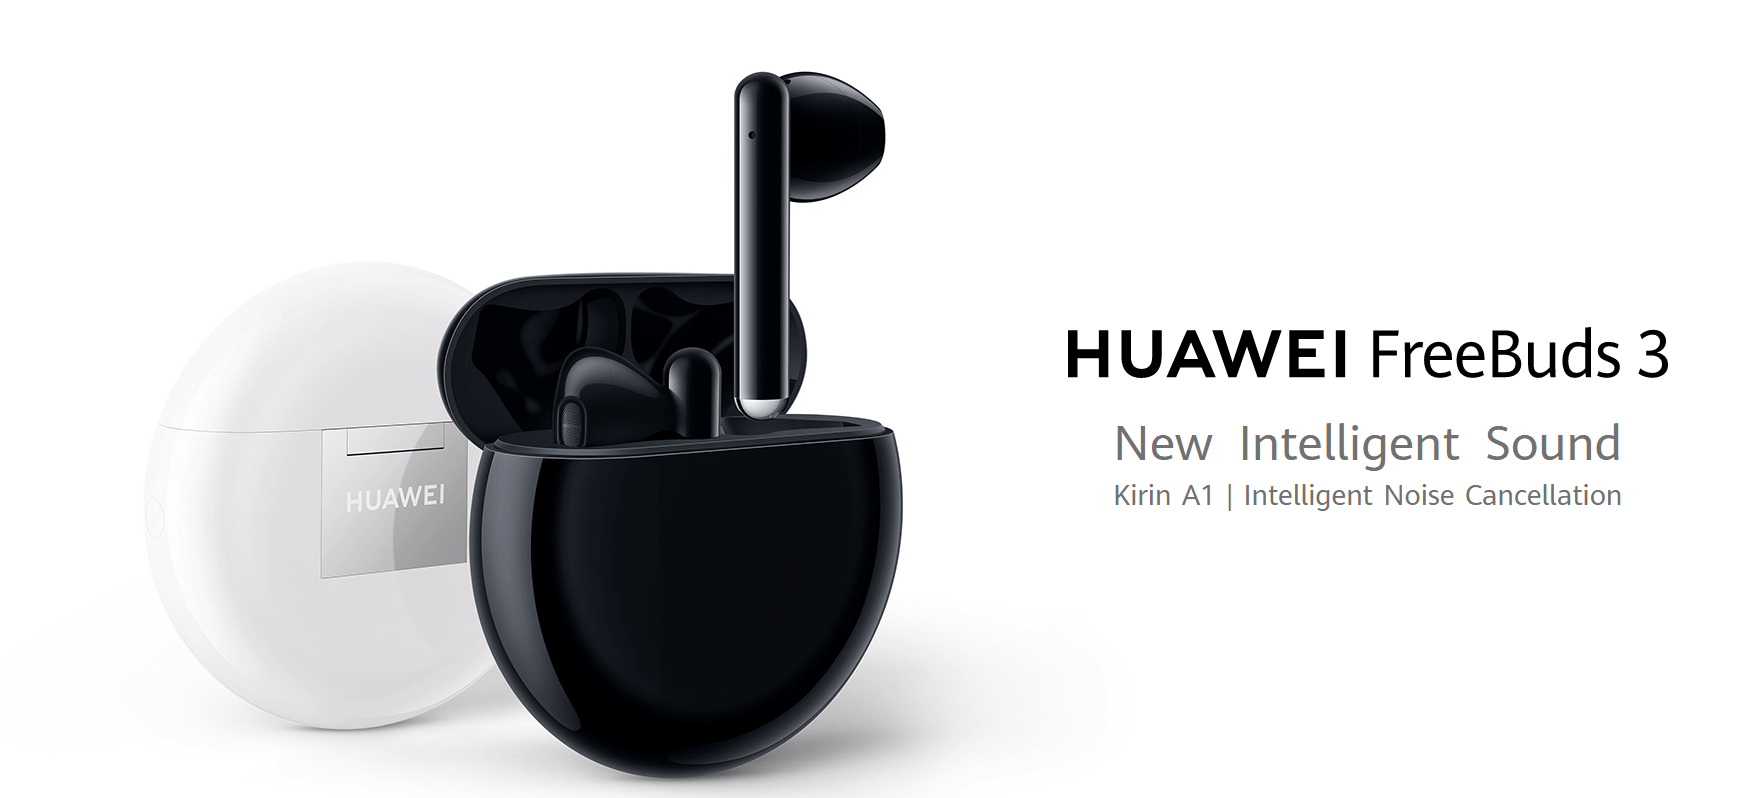 Huawei FreeBuds 3 wireless earbuds released with Kirin A1, bluetooth 5.1 | Hifigo